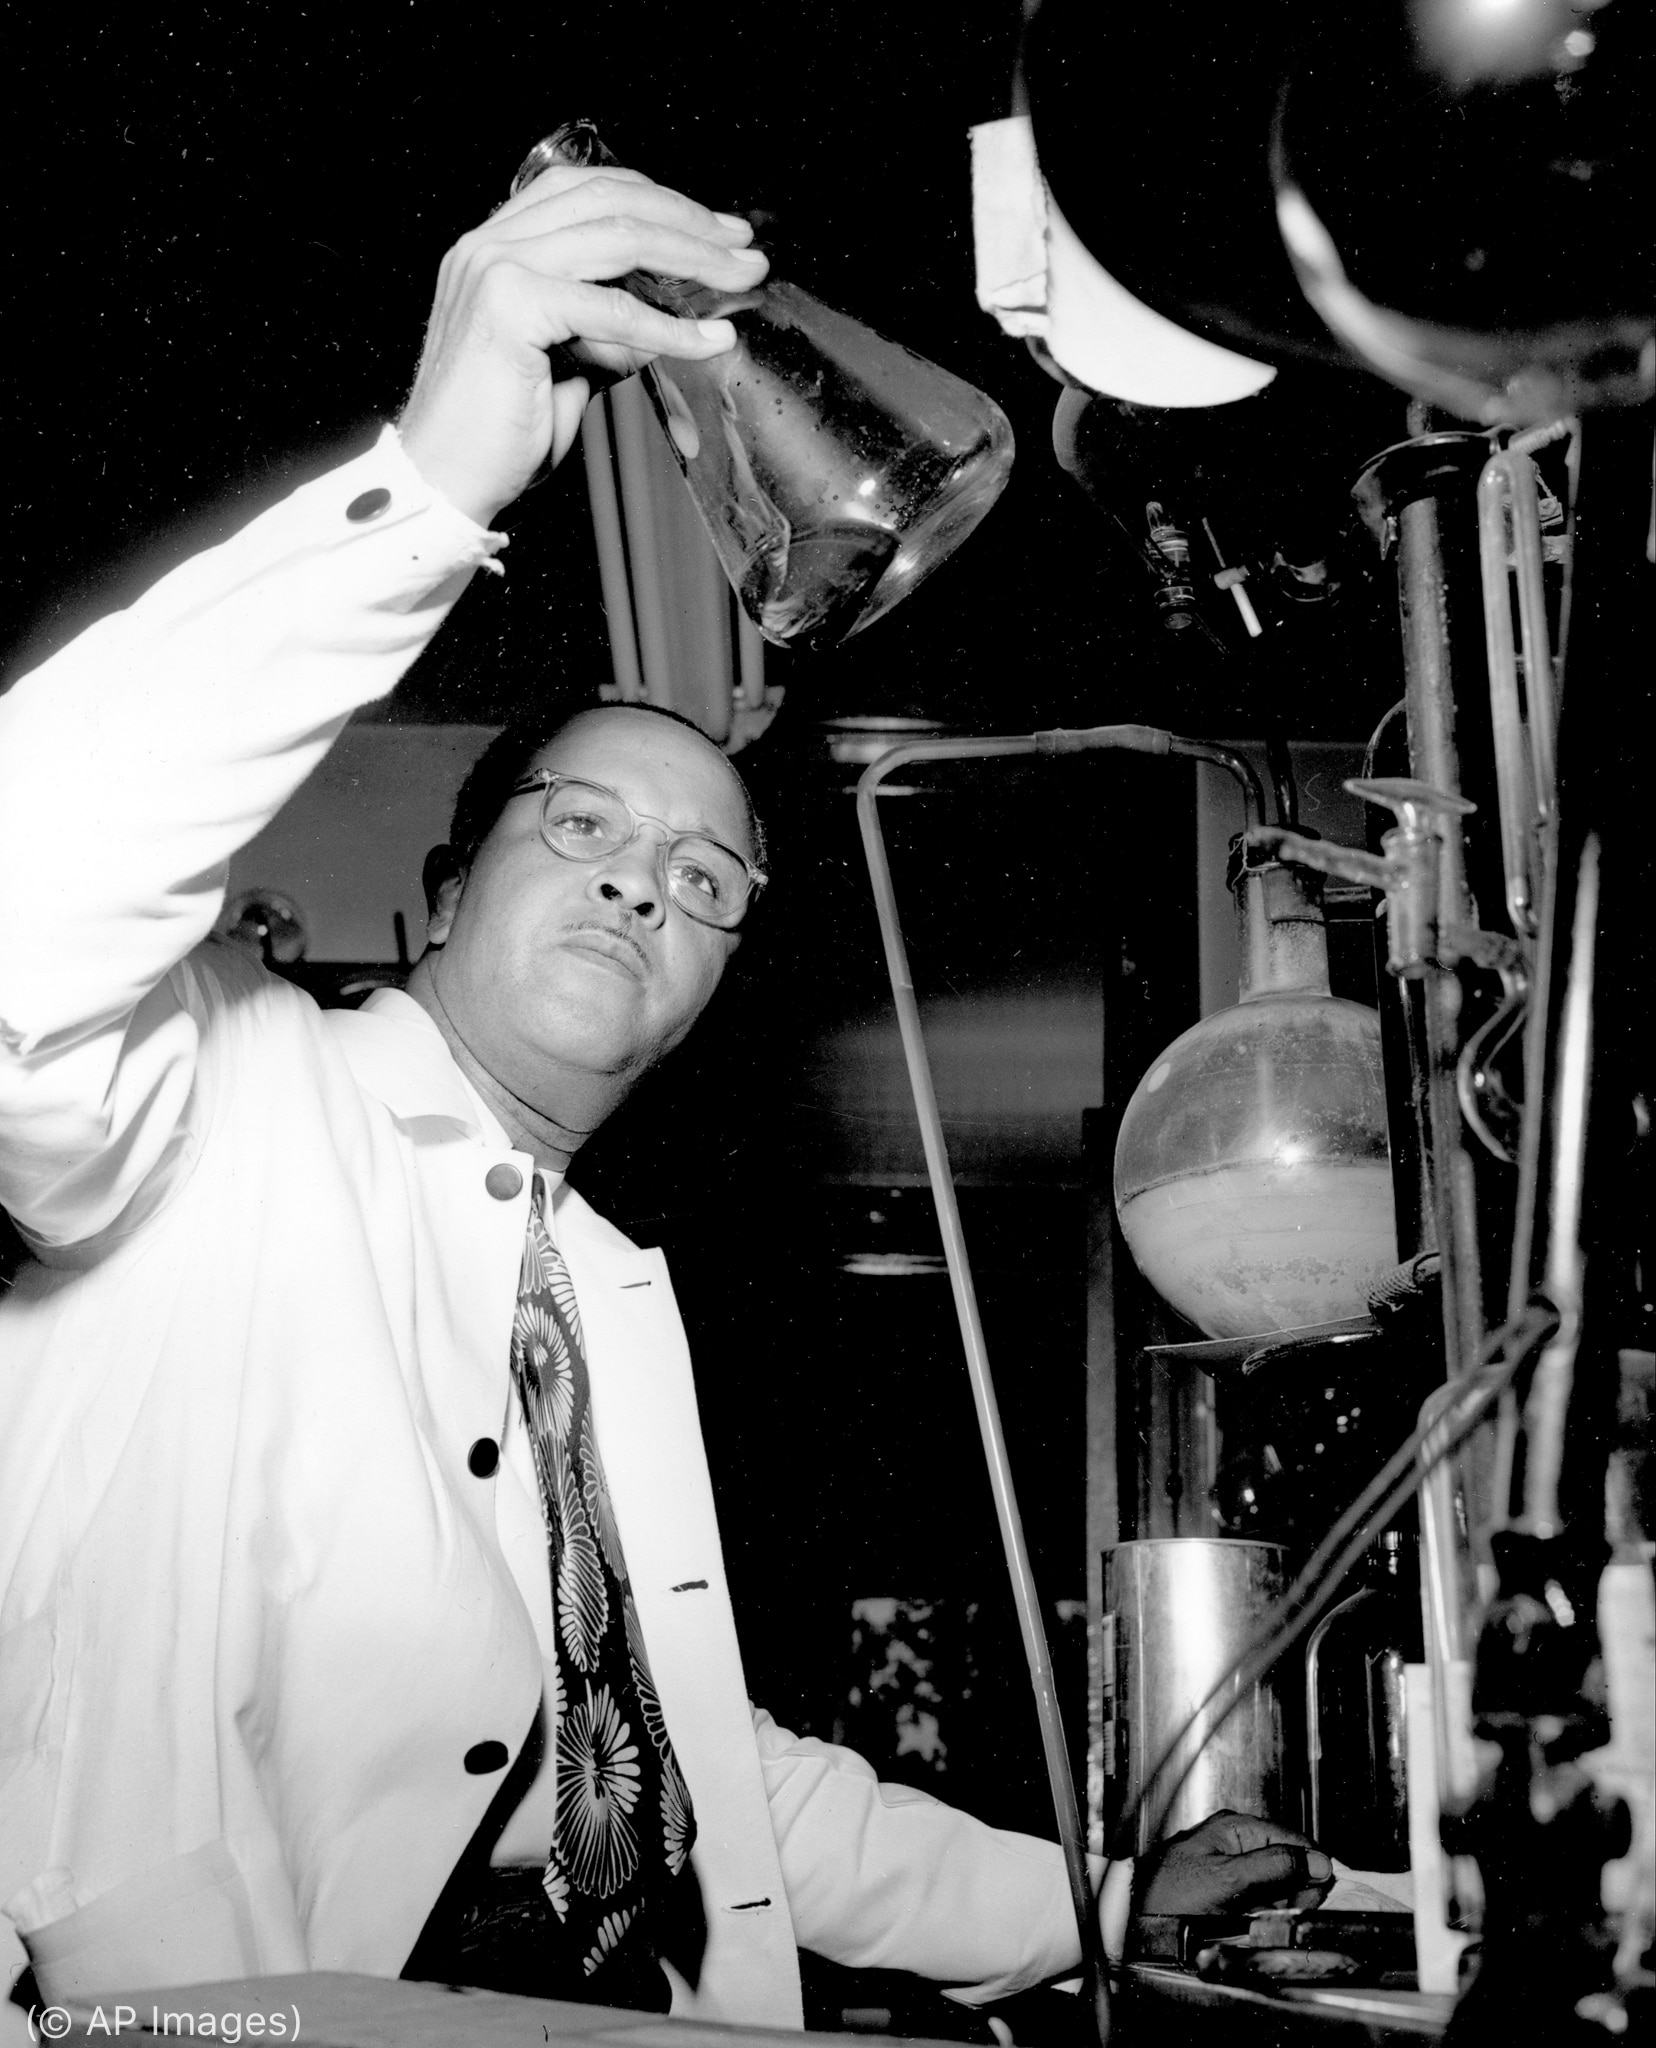 Percy L. Julian holding up and examining glass container (© AP Images)